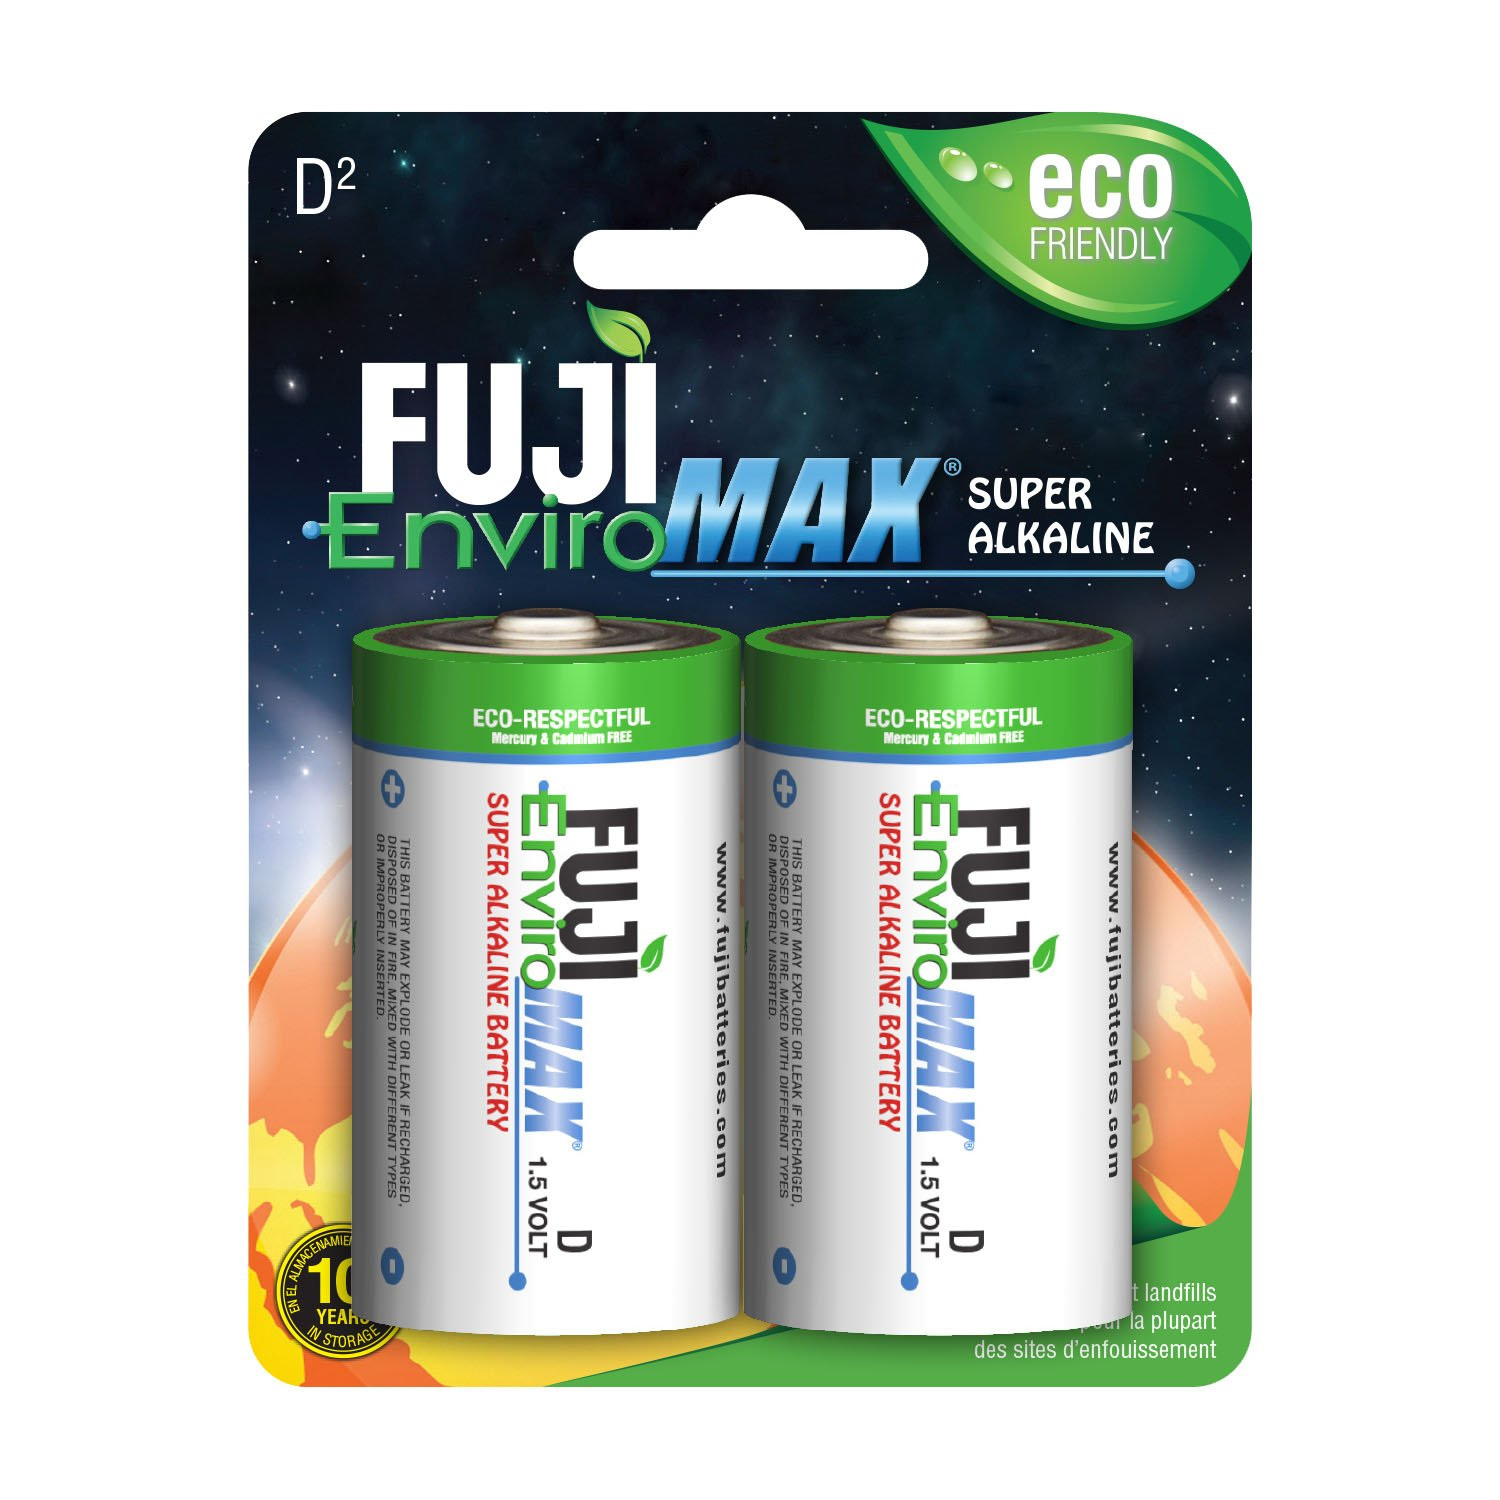 Fuji EnviroMAX Super Alkaline D Cell Eco Friendly Batteries (Pack of 96)